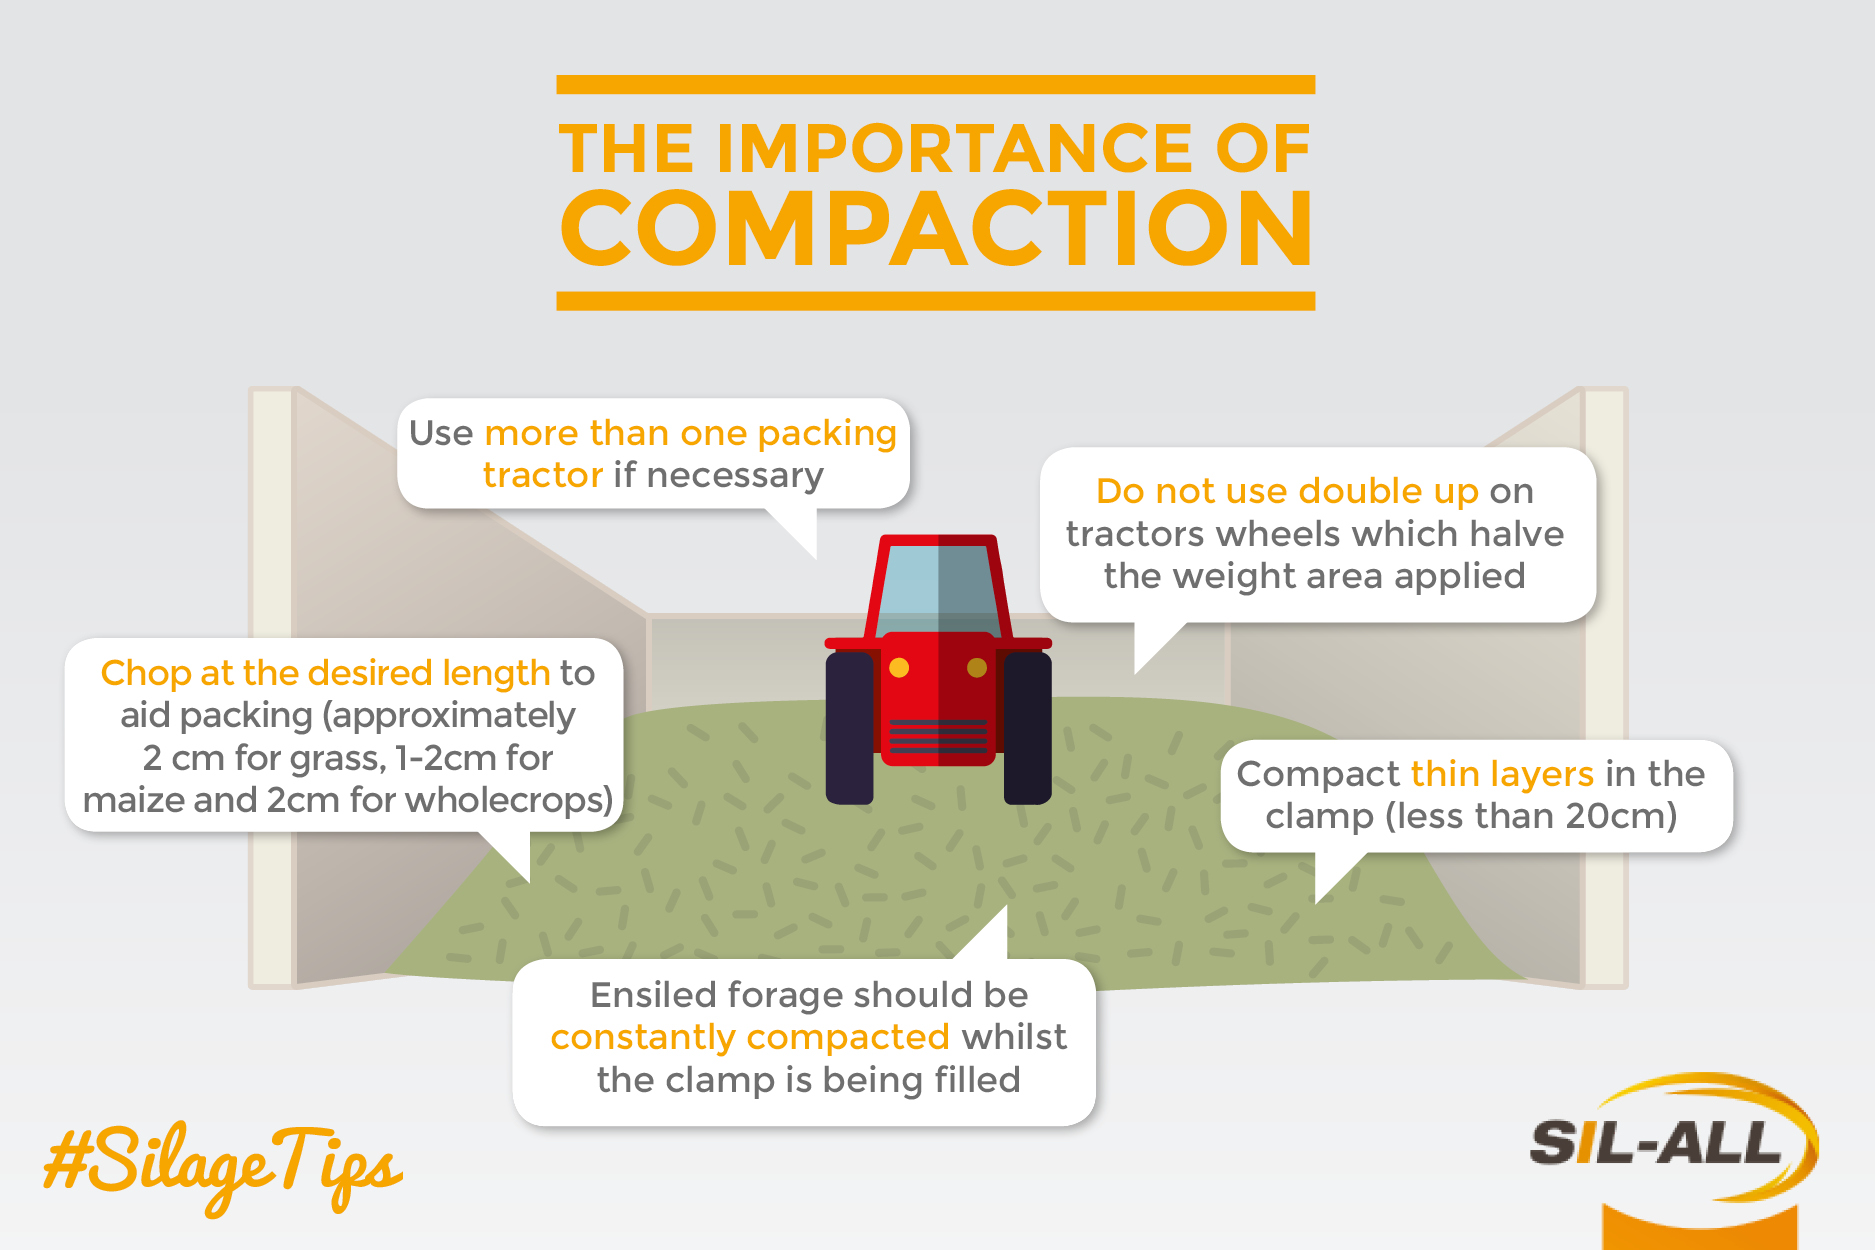 Tips for creating quality silage @Packing